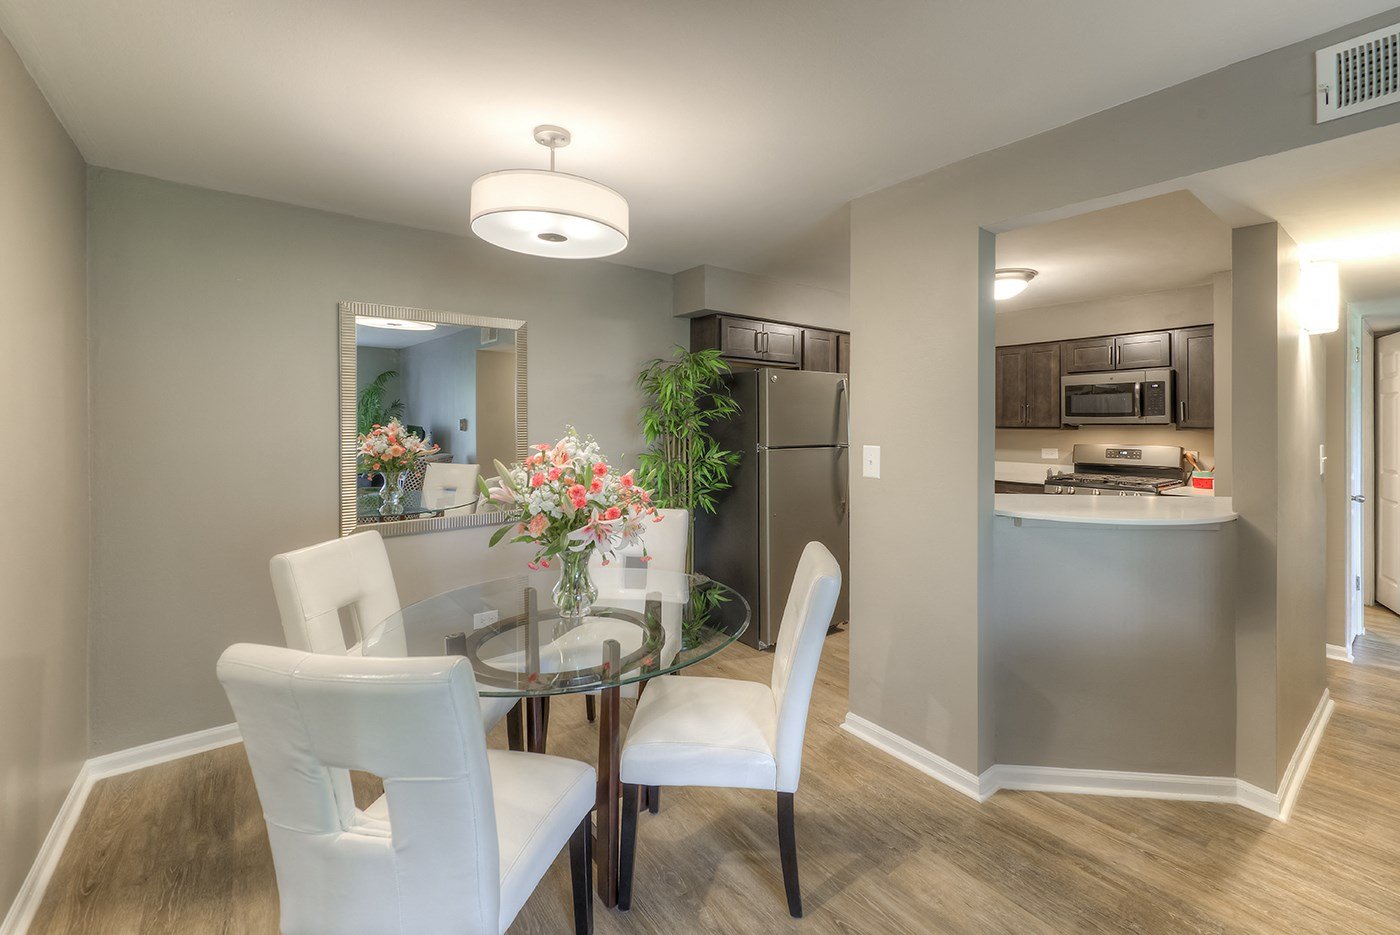 Eat-in Kitchen With Pantry, at Carol Stream CrossILg, Carol Stream, IL